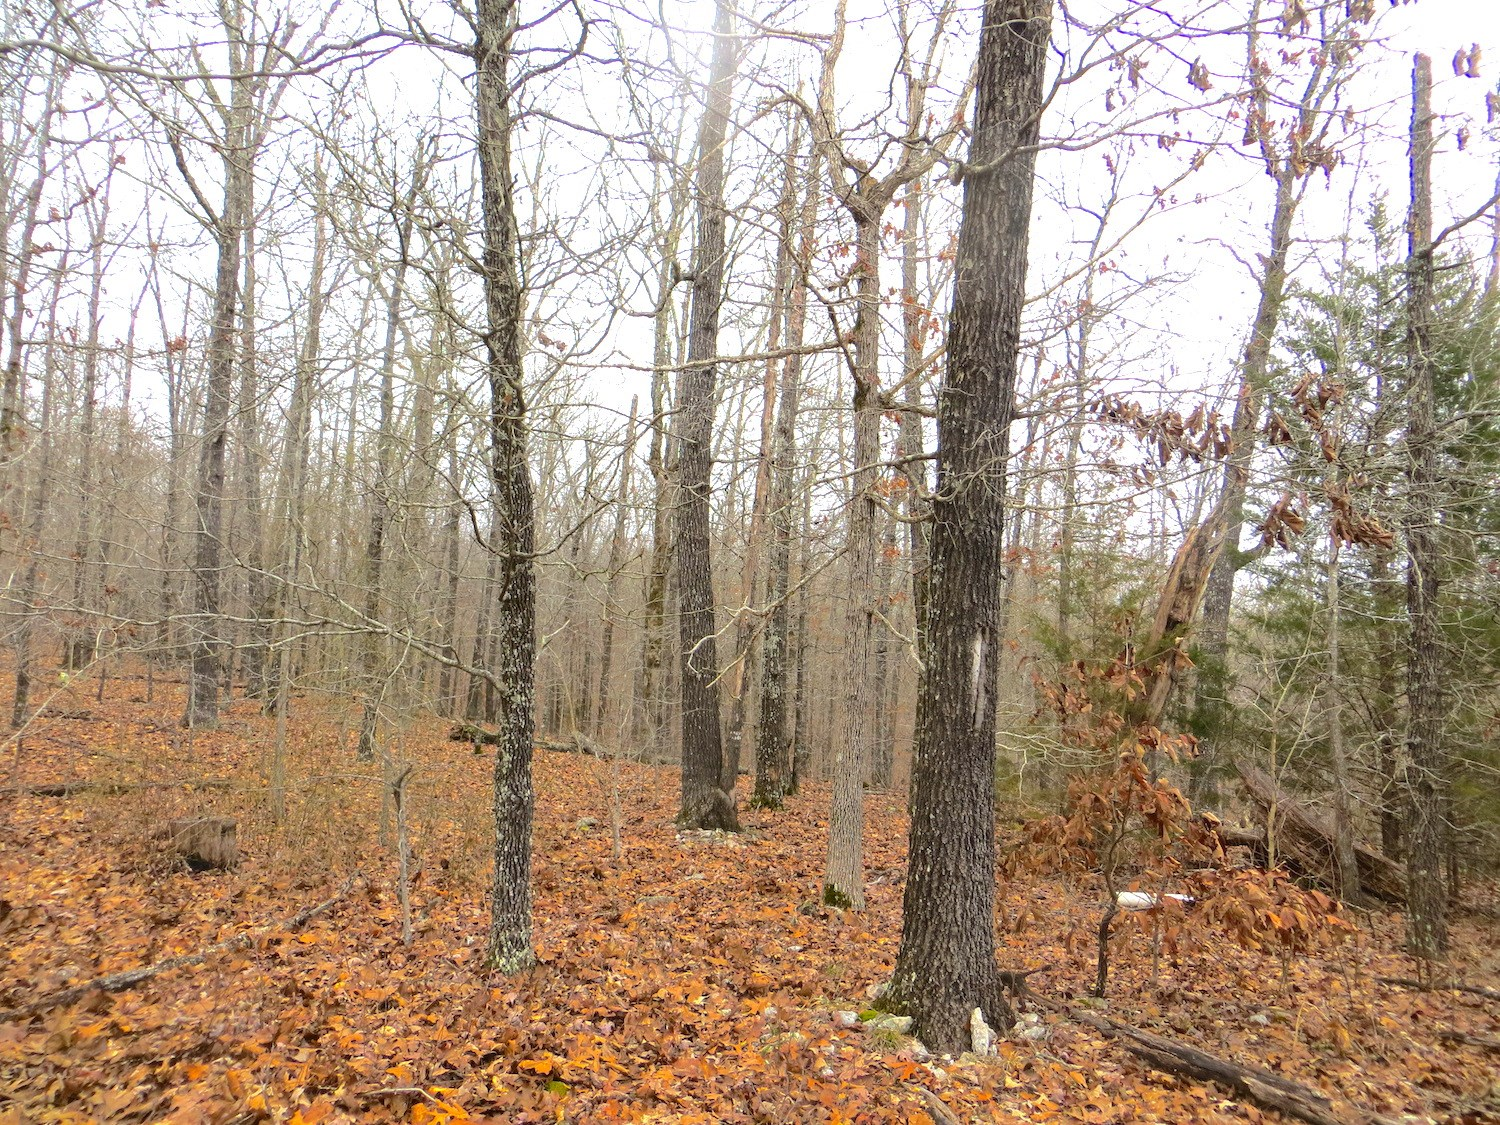 Vacant Land for Sale in Arkansas Ozarks